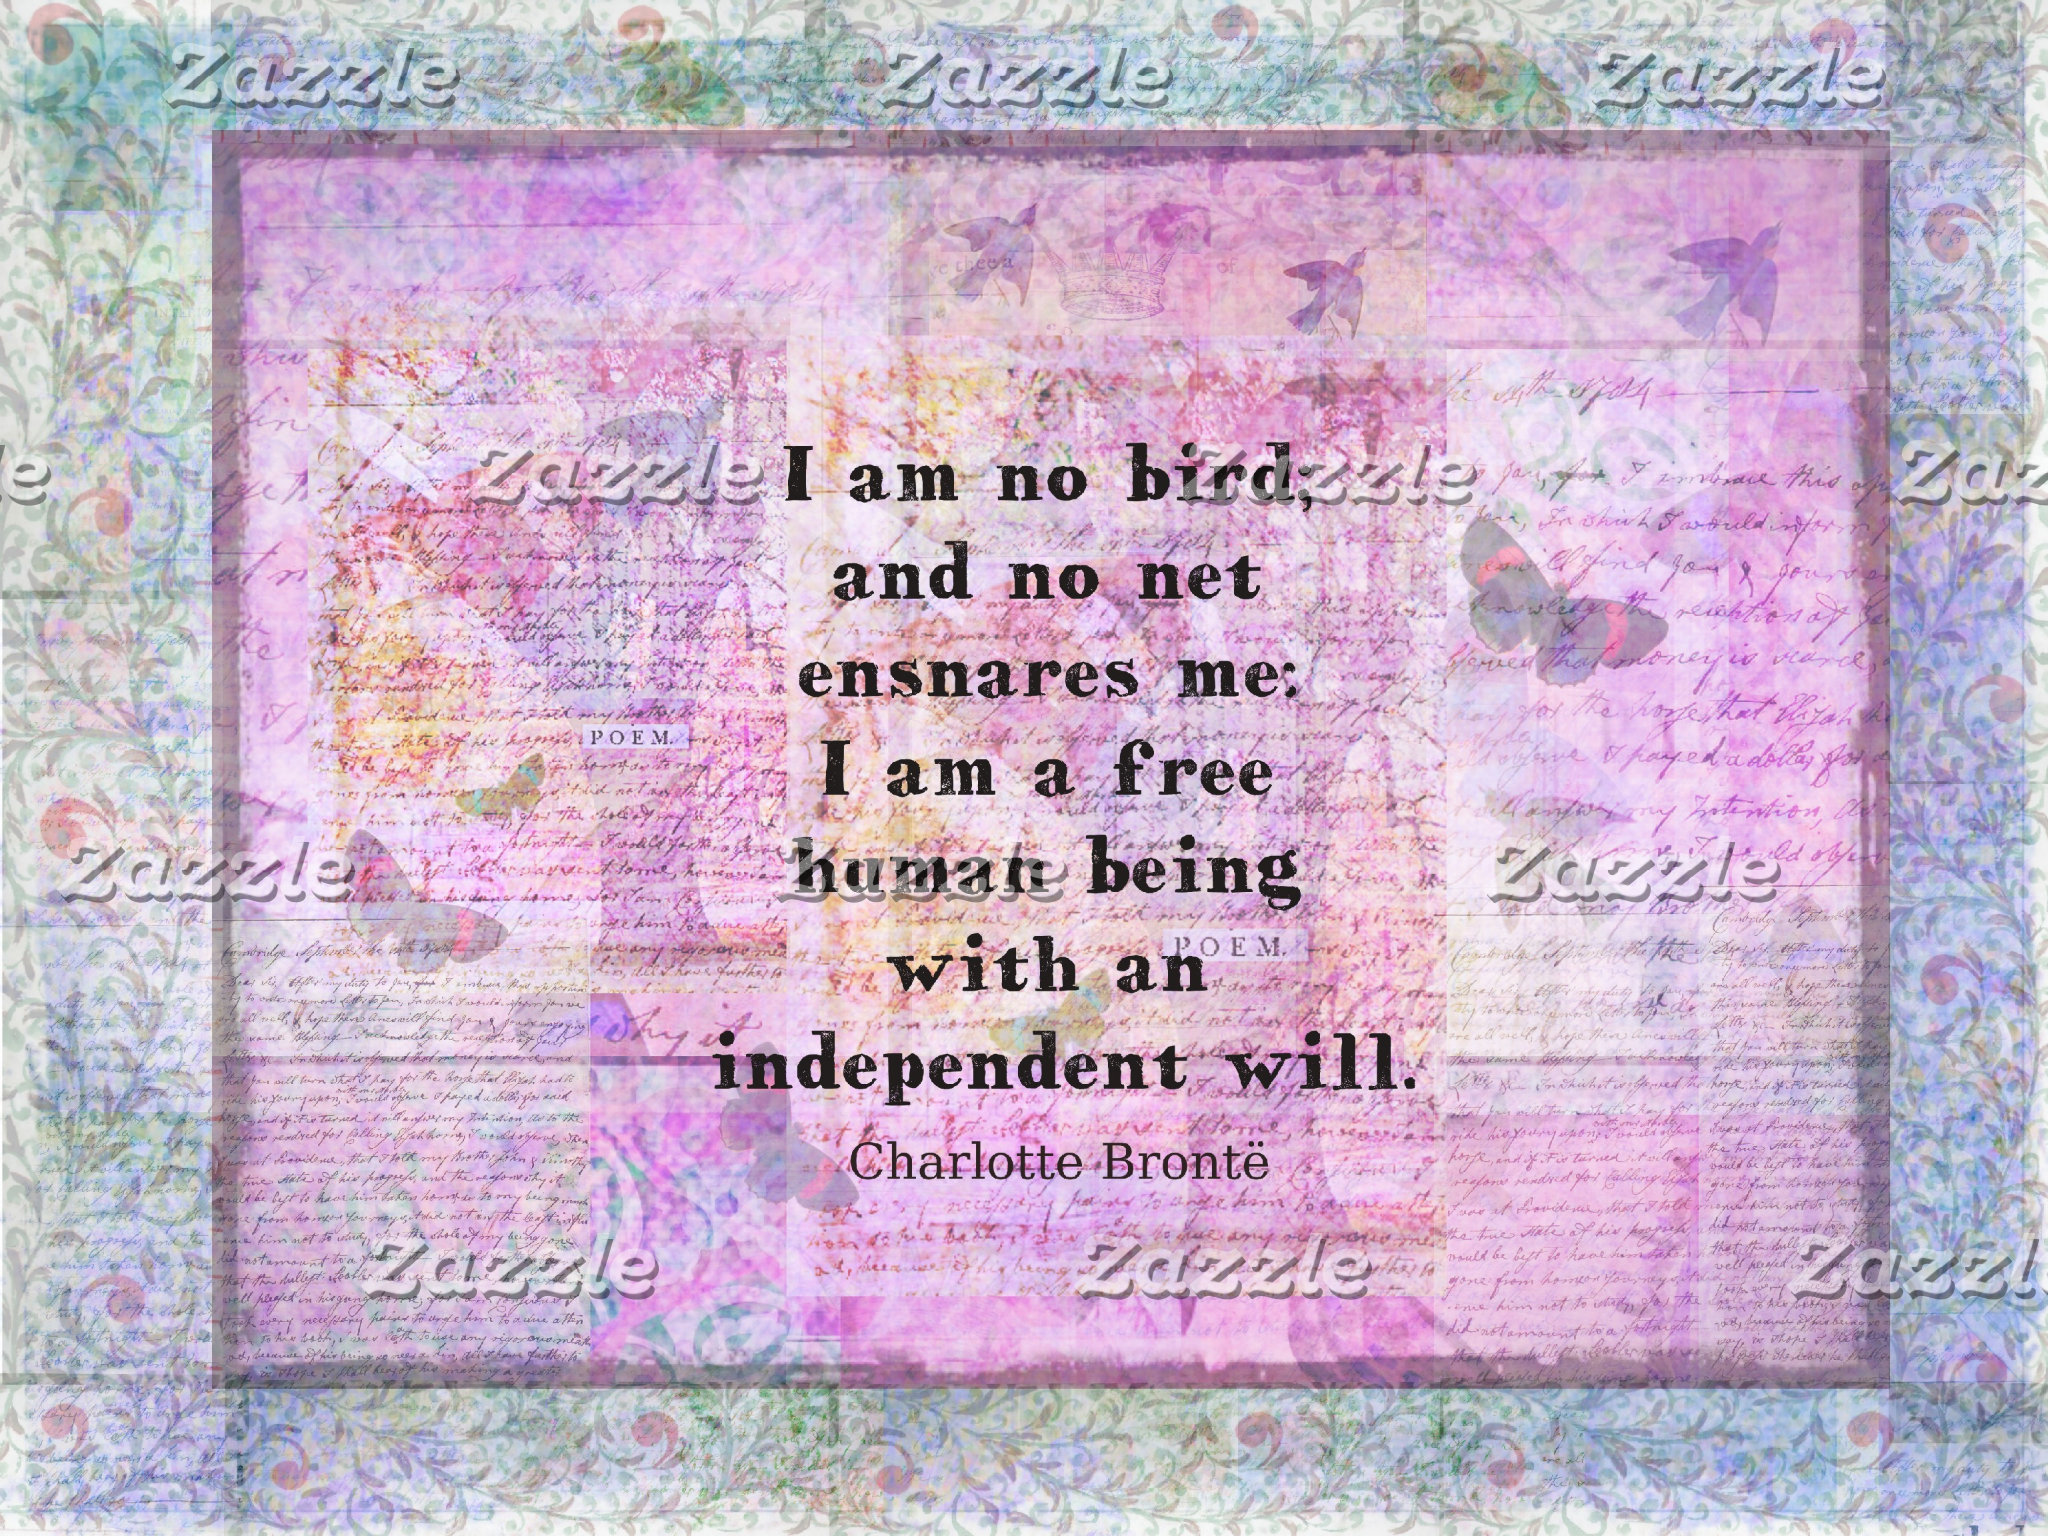 I am no bird; and no net ensnares me: I am a free